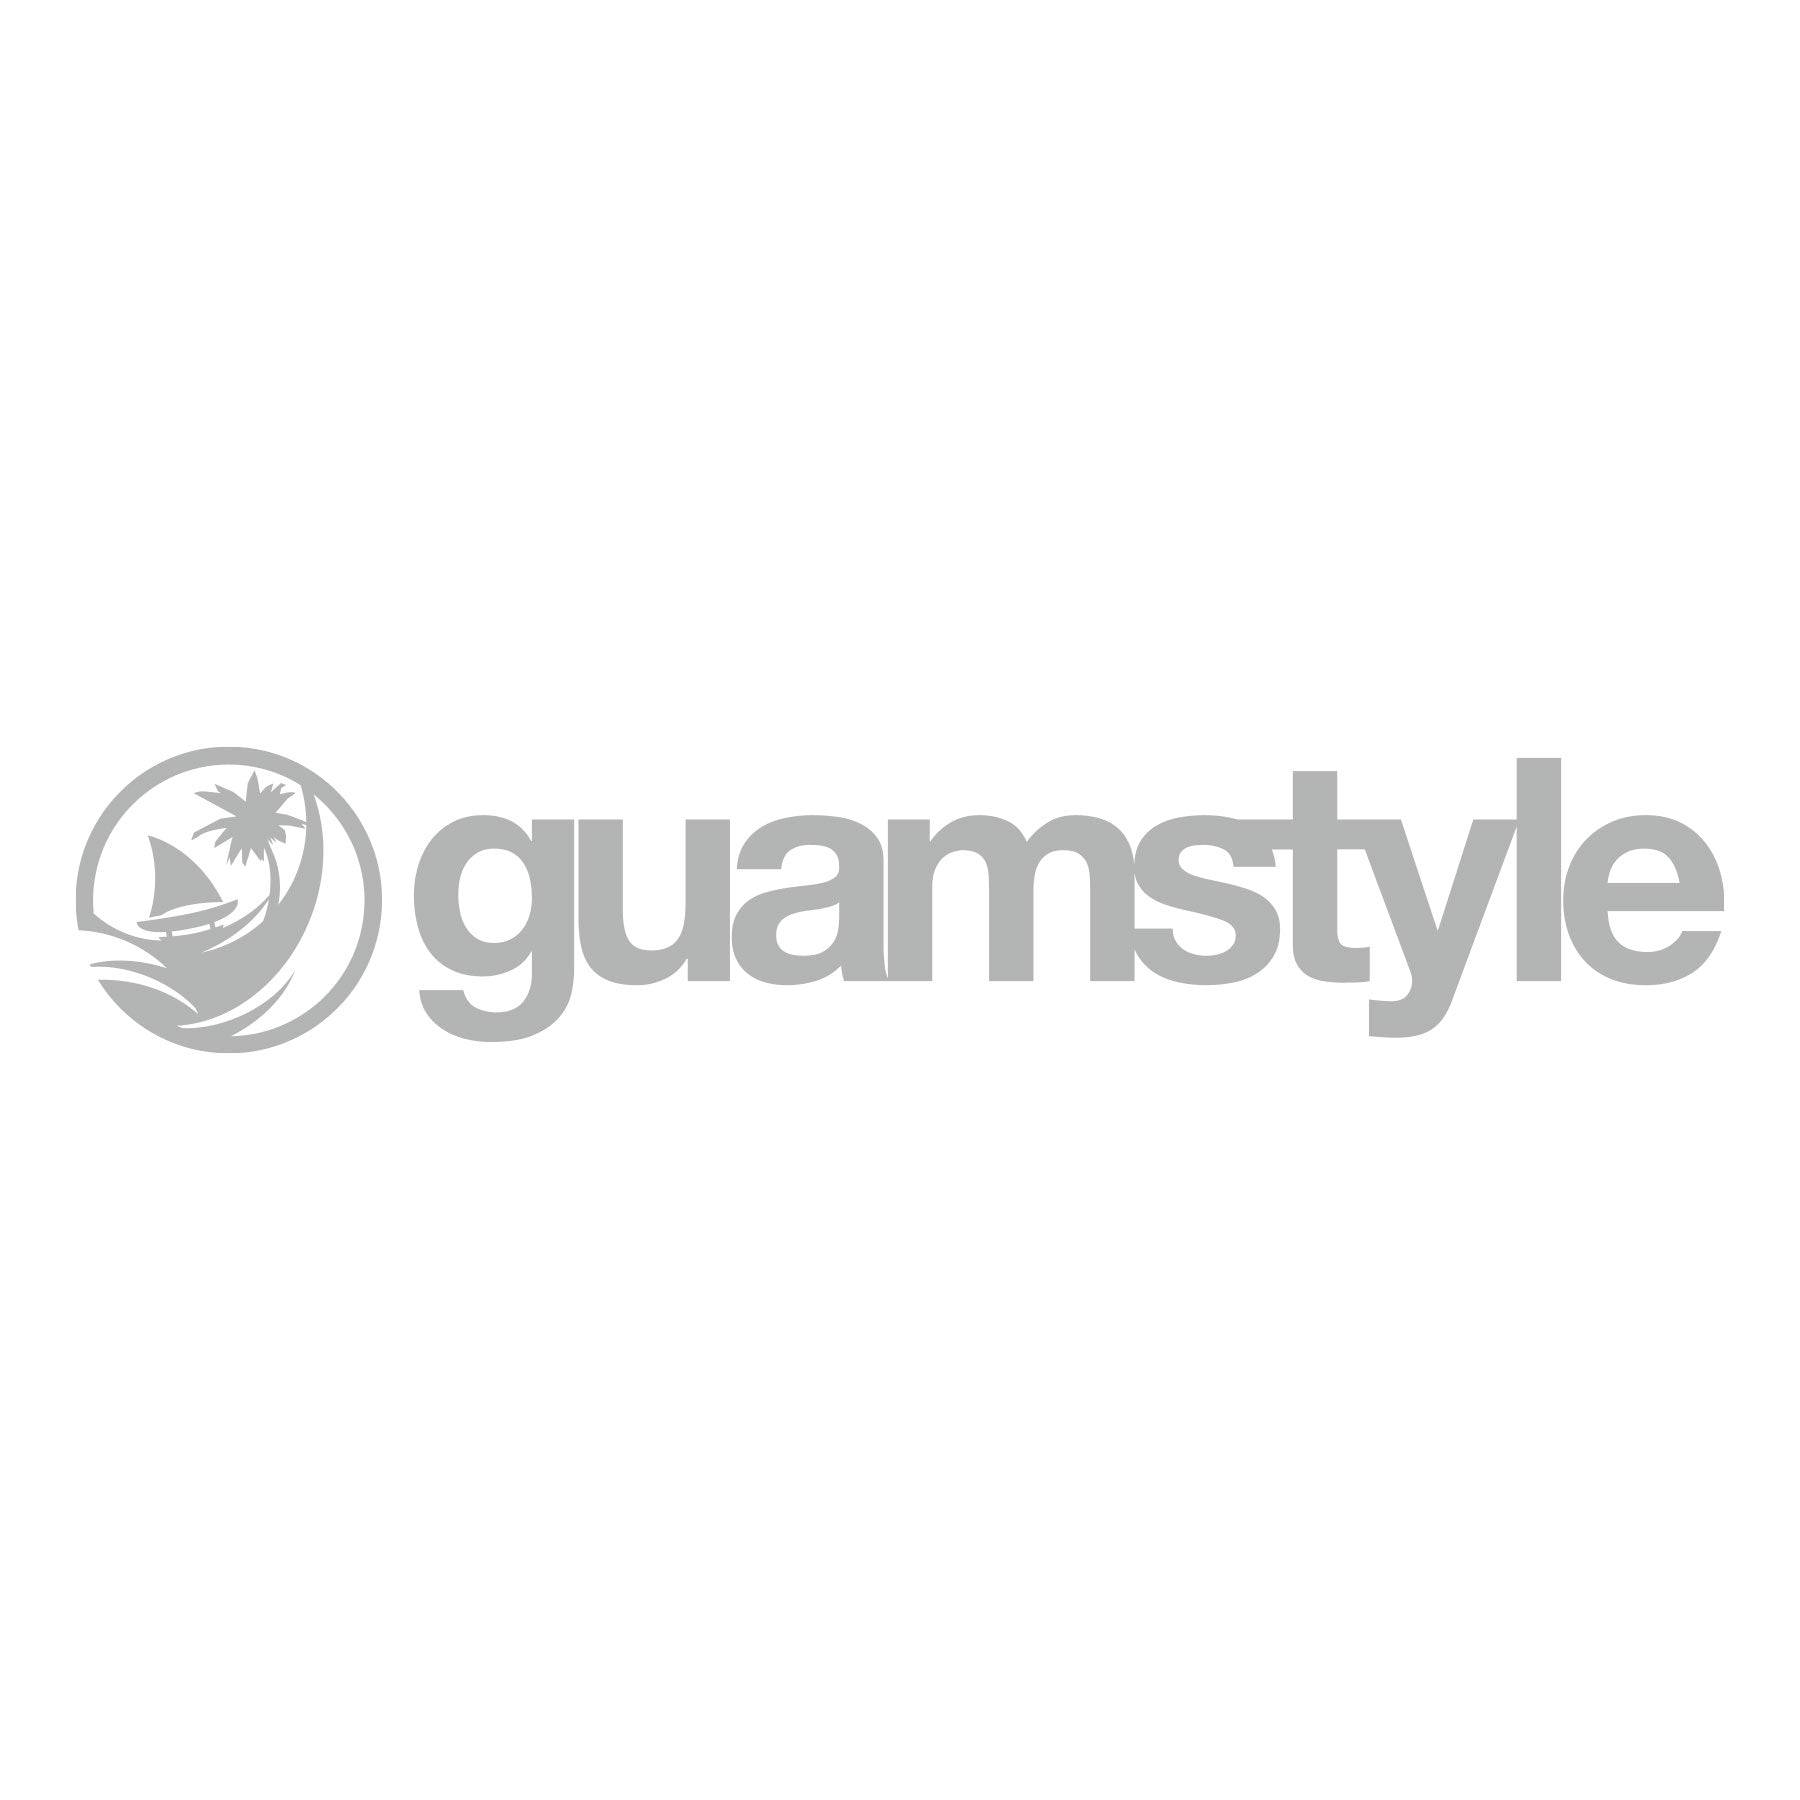 Guamstyle Silver Decal